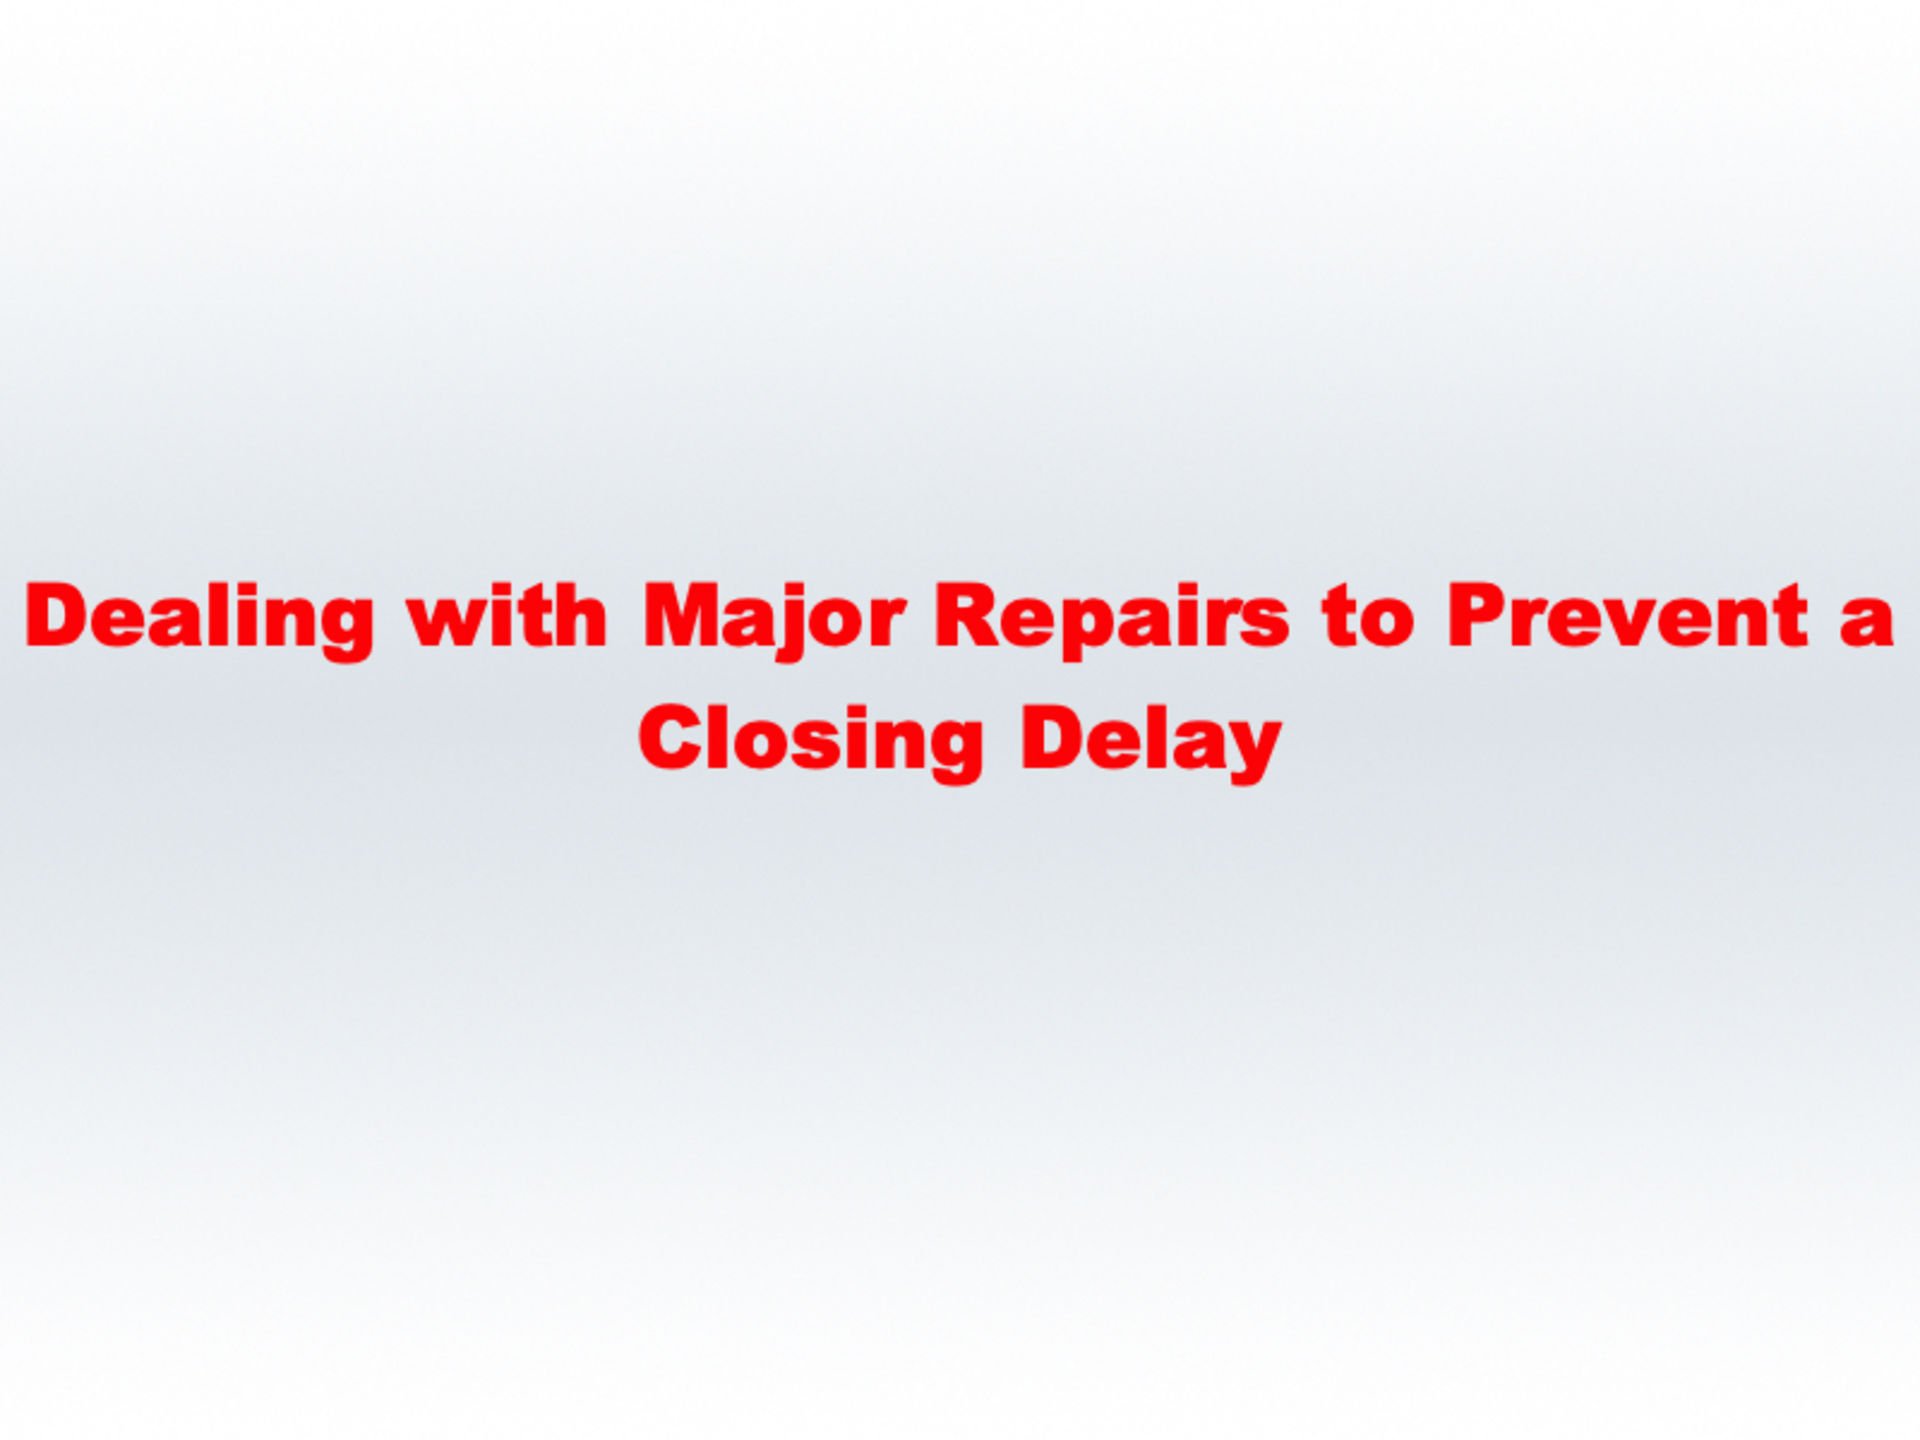 Dealing with major repairs to prevent a closing delay